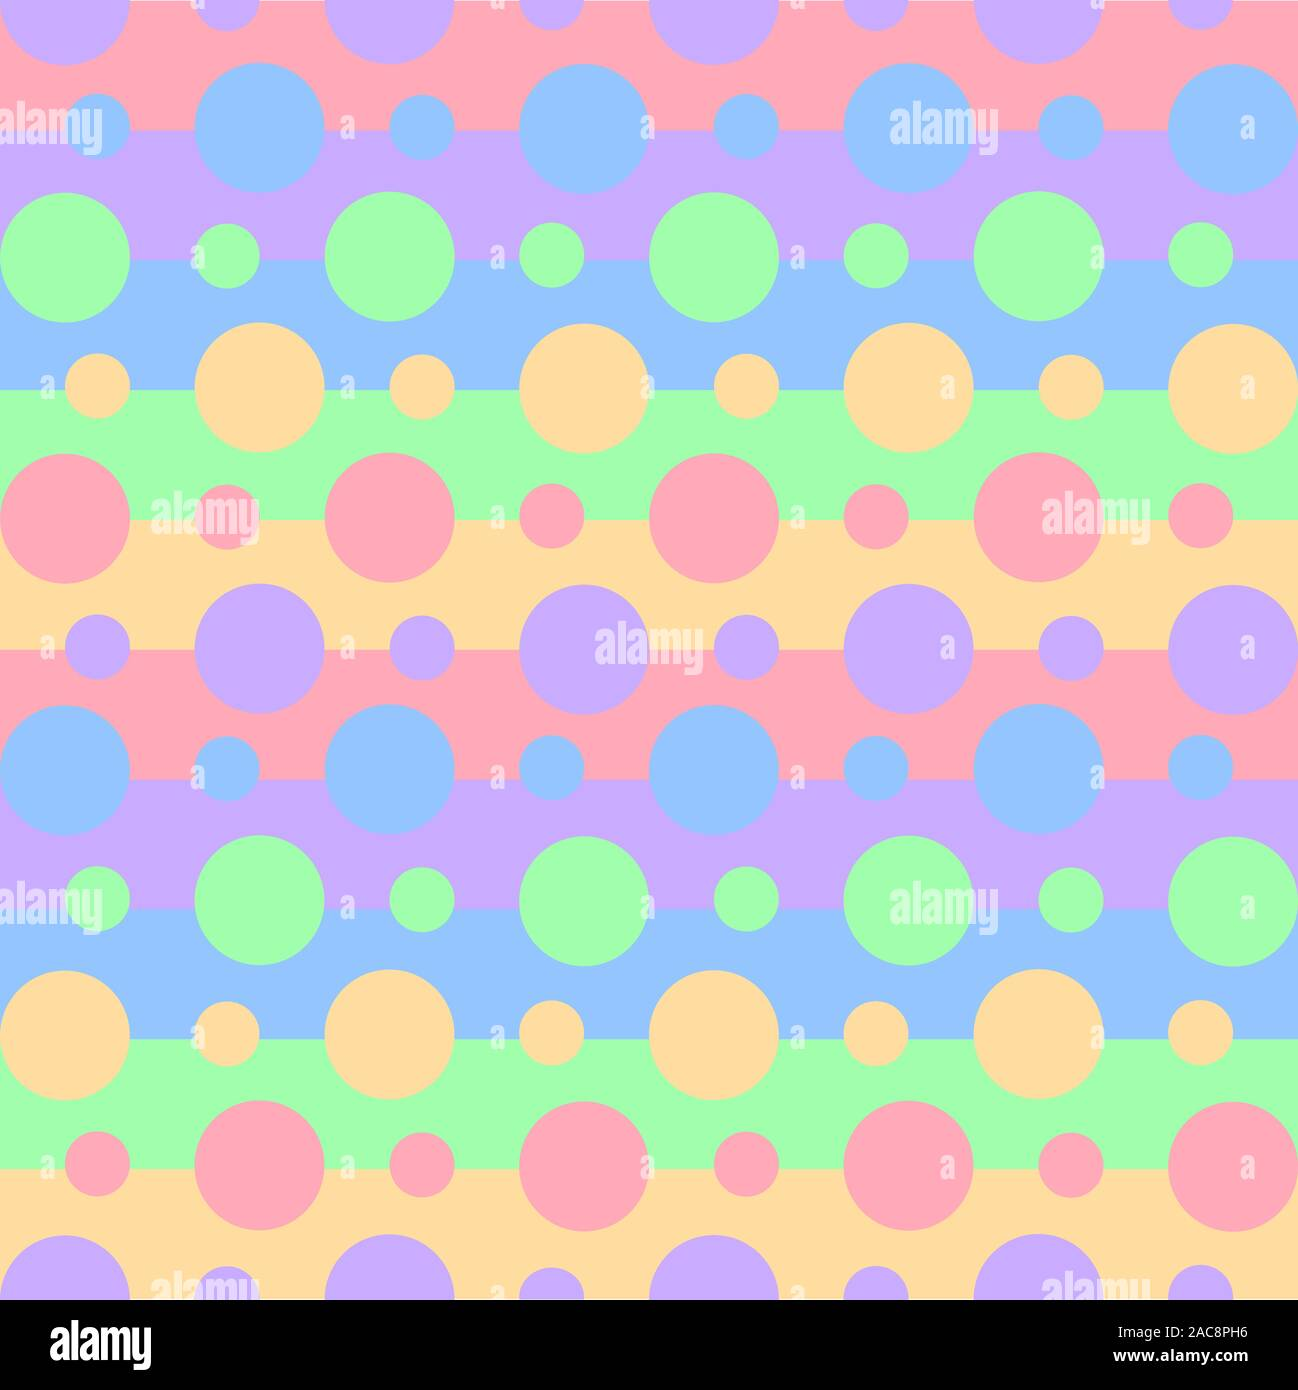 Seamless Pattern Of Vibrant Rainbow Colors On Stripes And Circles Wallpaper Of Baby Pastel Print For Clothes Pajamas Notebooks Or Wrapping Paper Stock Vector Image Art Alamy